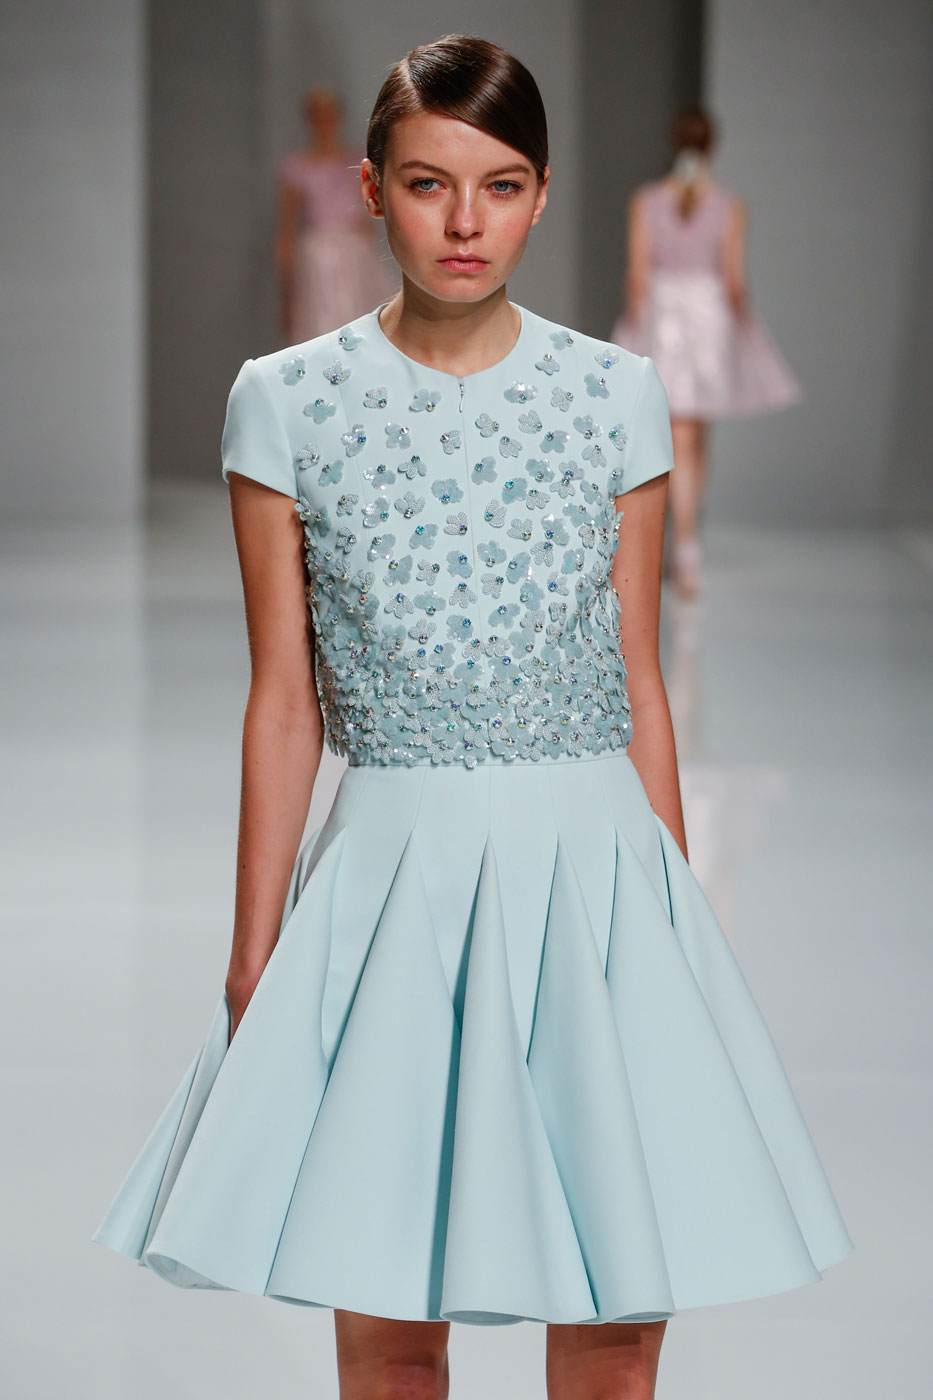 Georges-Hobeika-fashion-runway-show-haute-couture-paris-spring-2015-the-impression-12